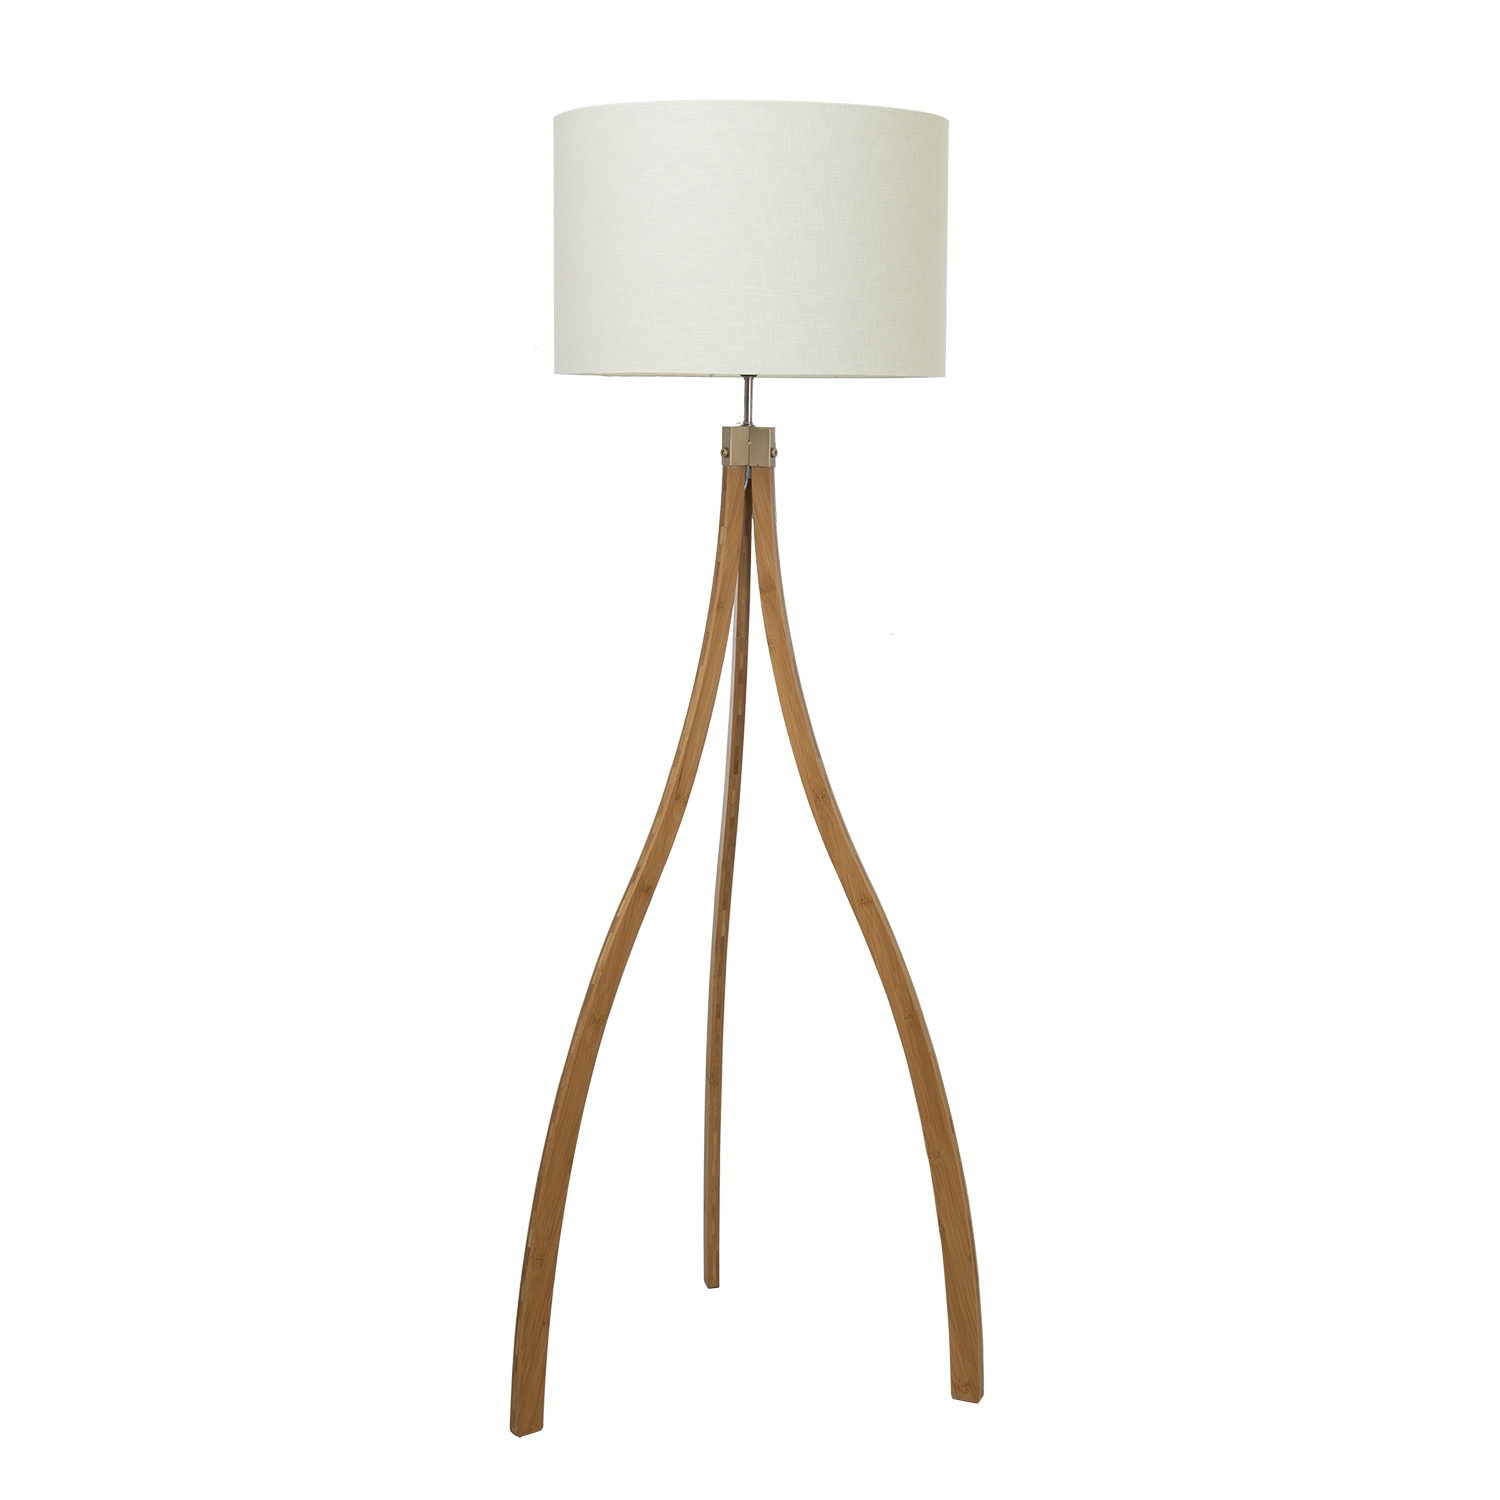 Image of Casa Curved Tripod Floor Lamp, Natural Wood